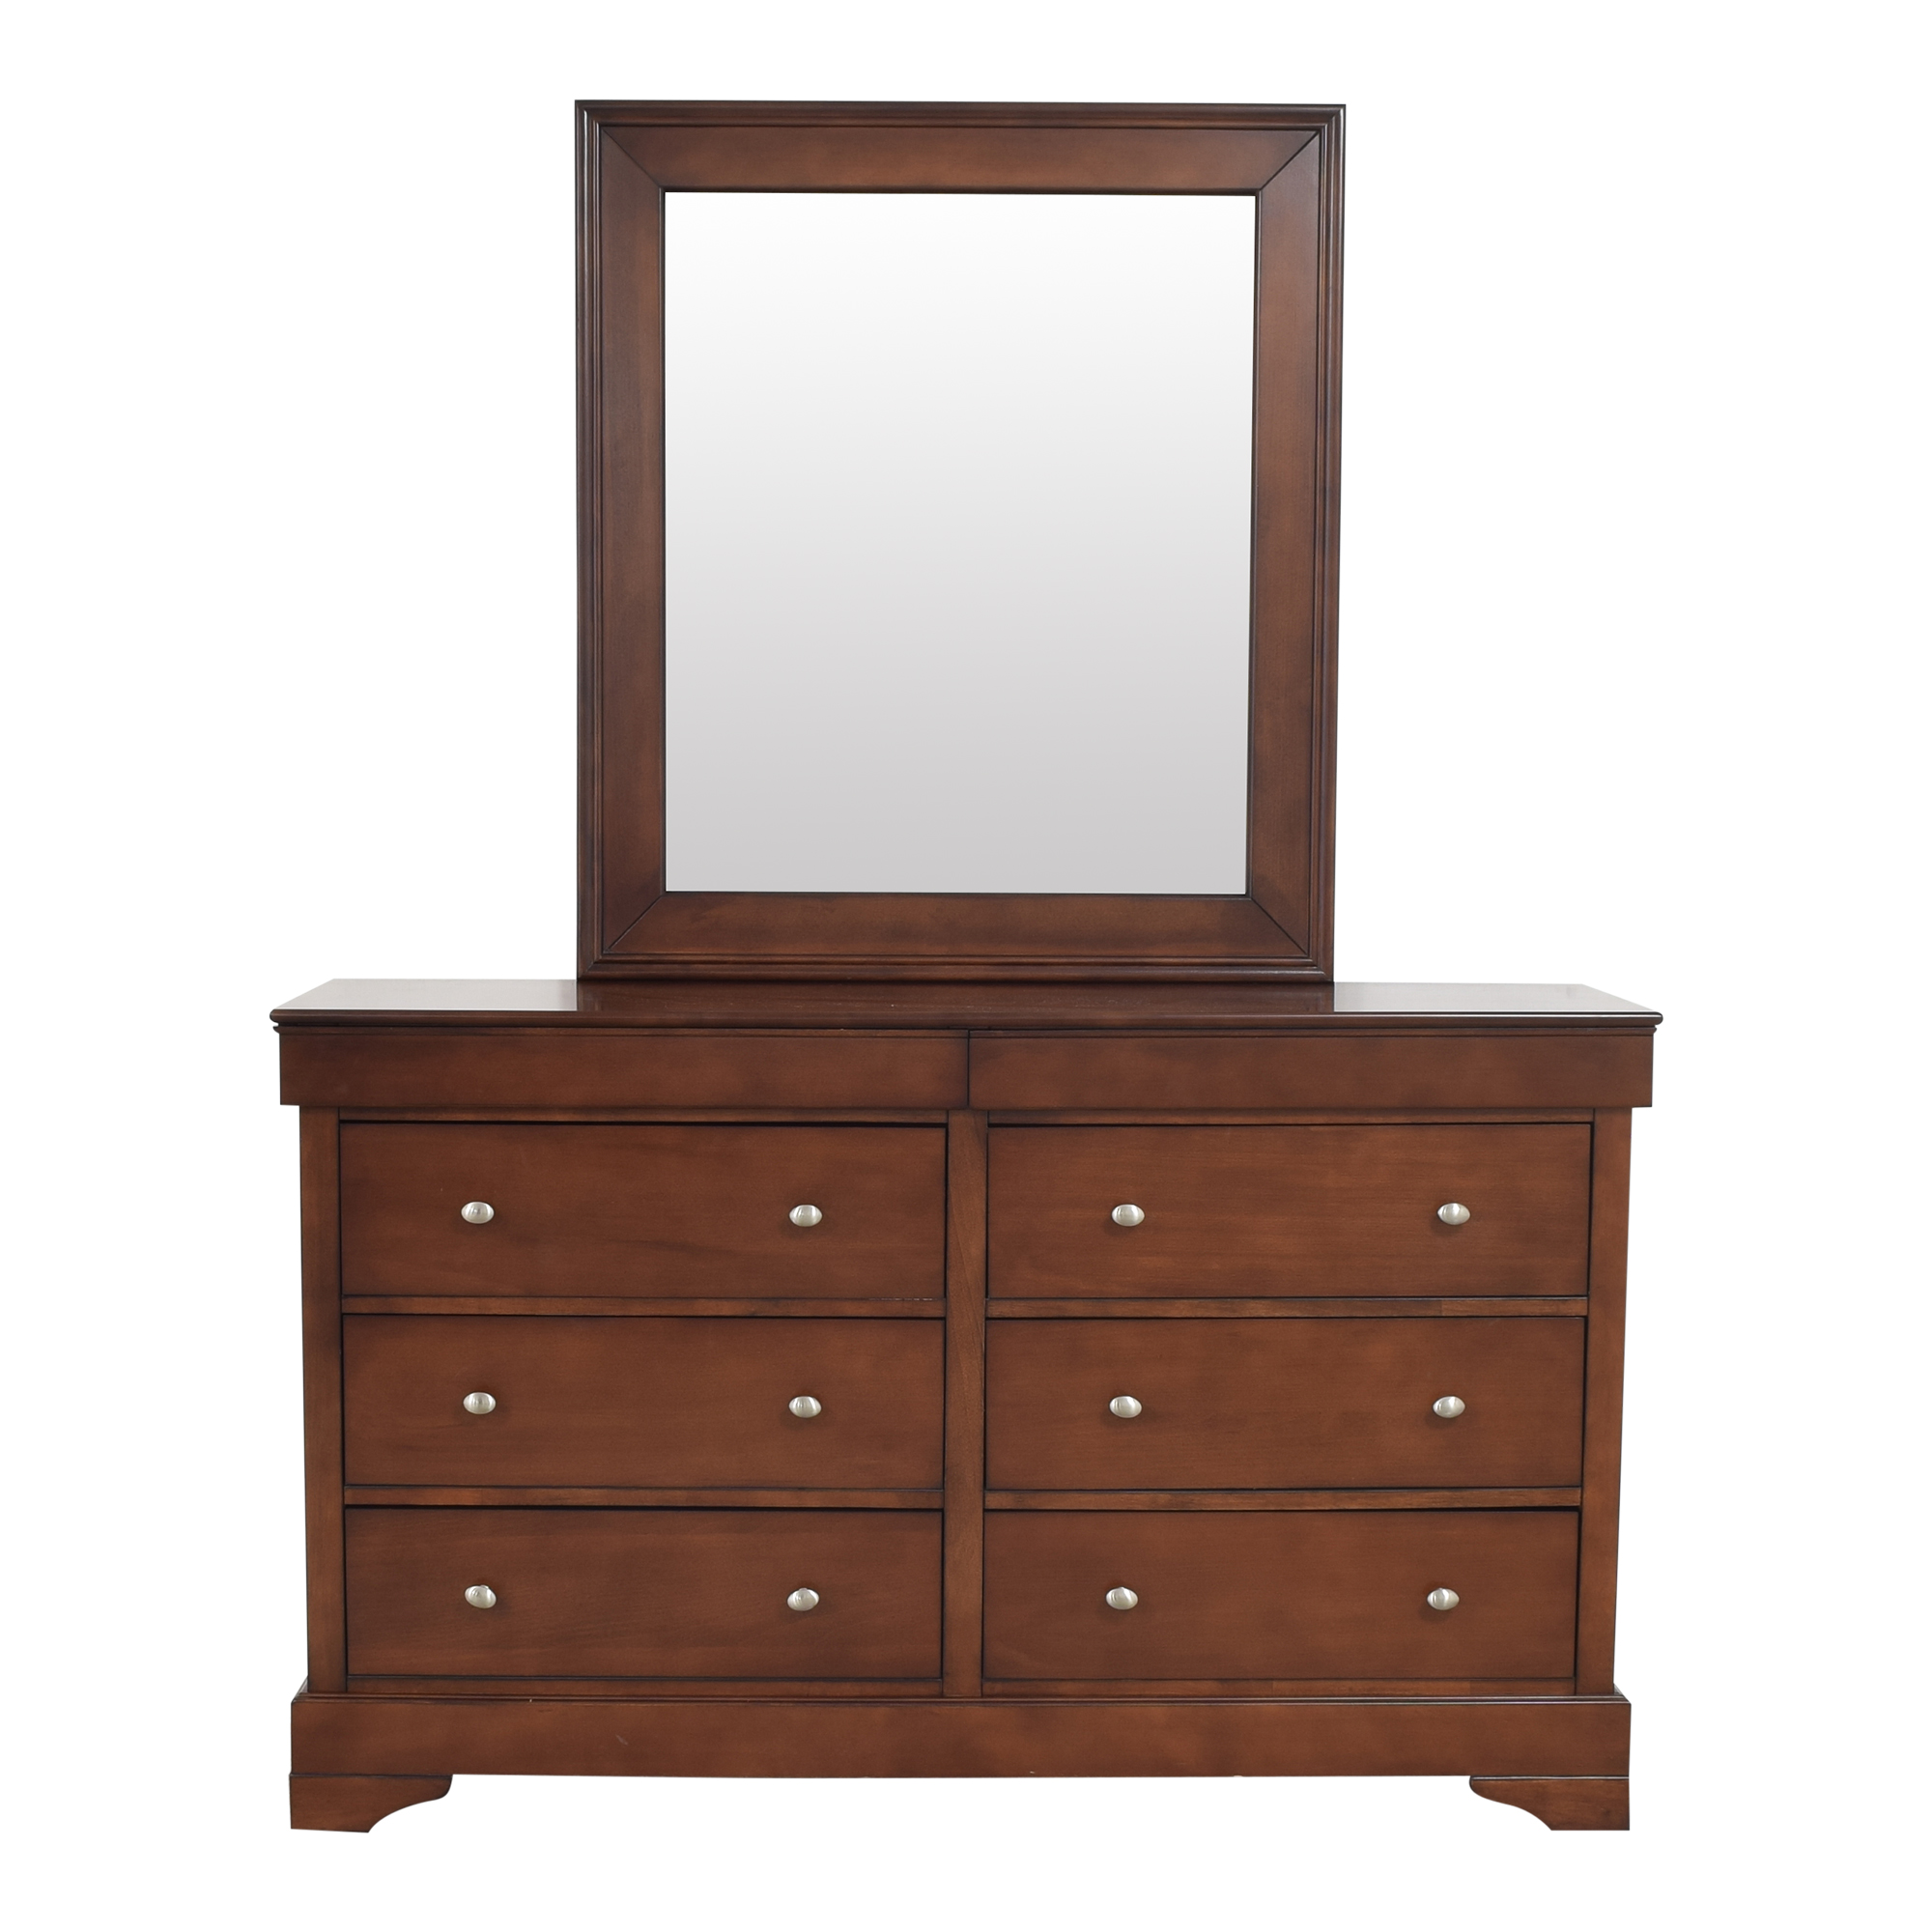 shop Lifestyle Solutions Lifestyle Solutions Double Dresser with Mirror online